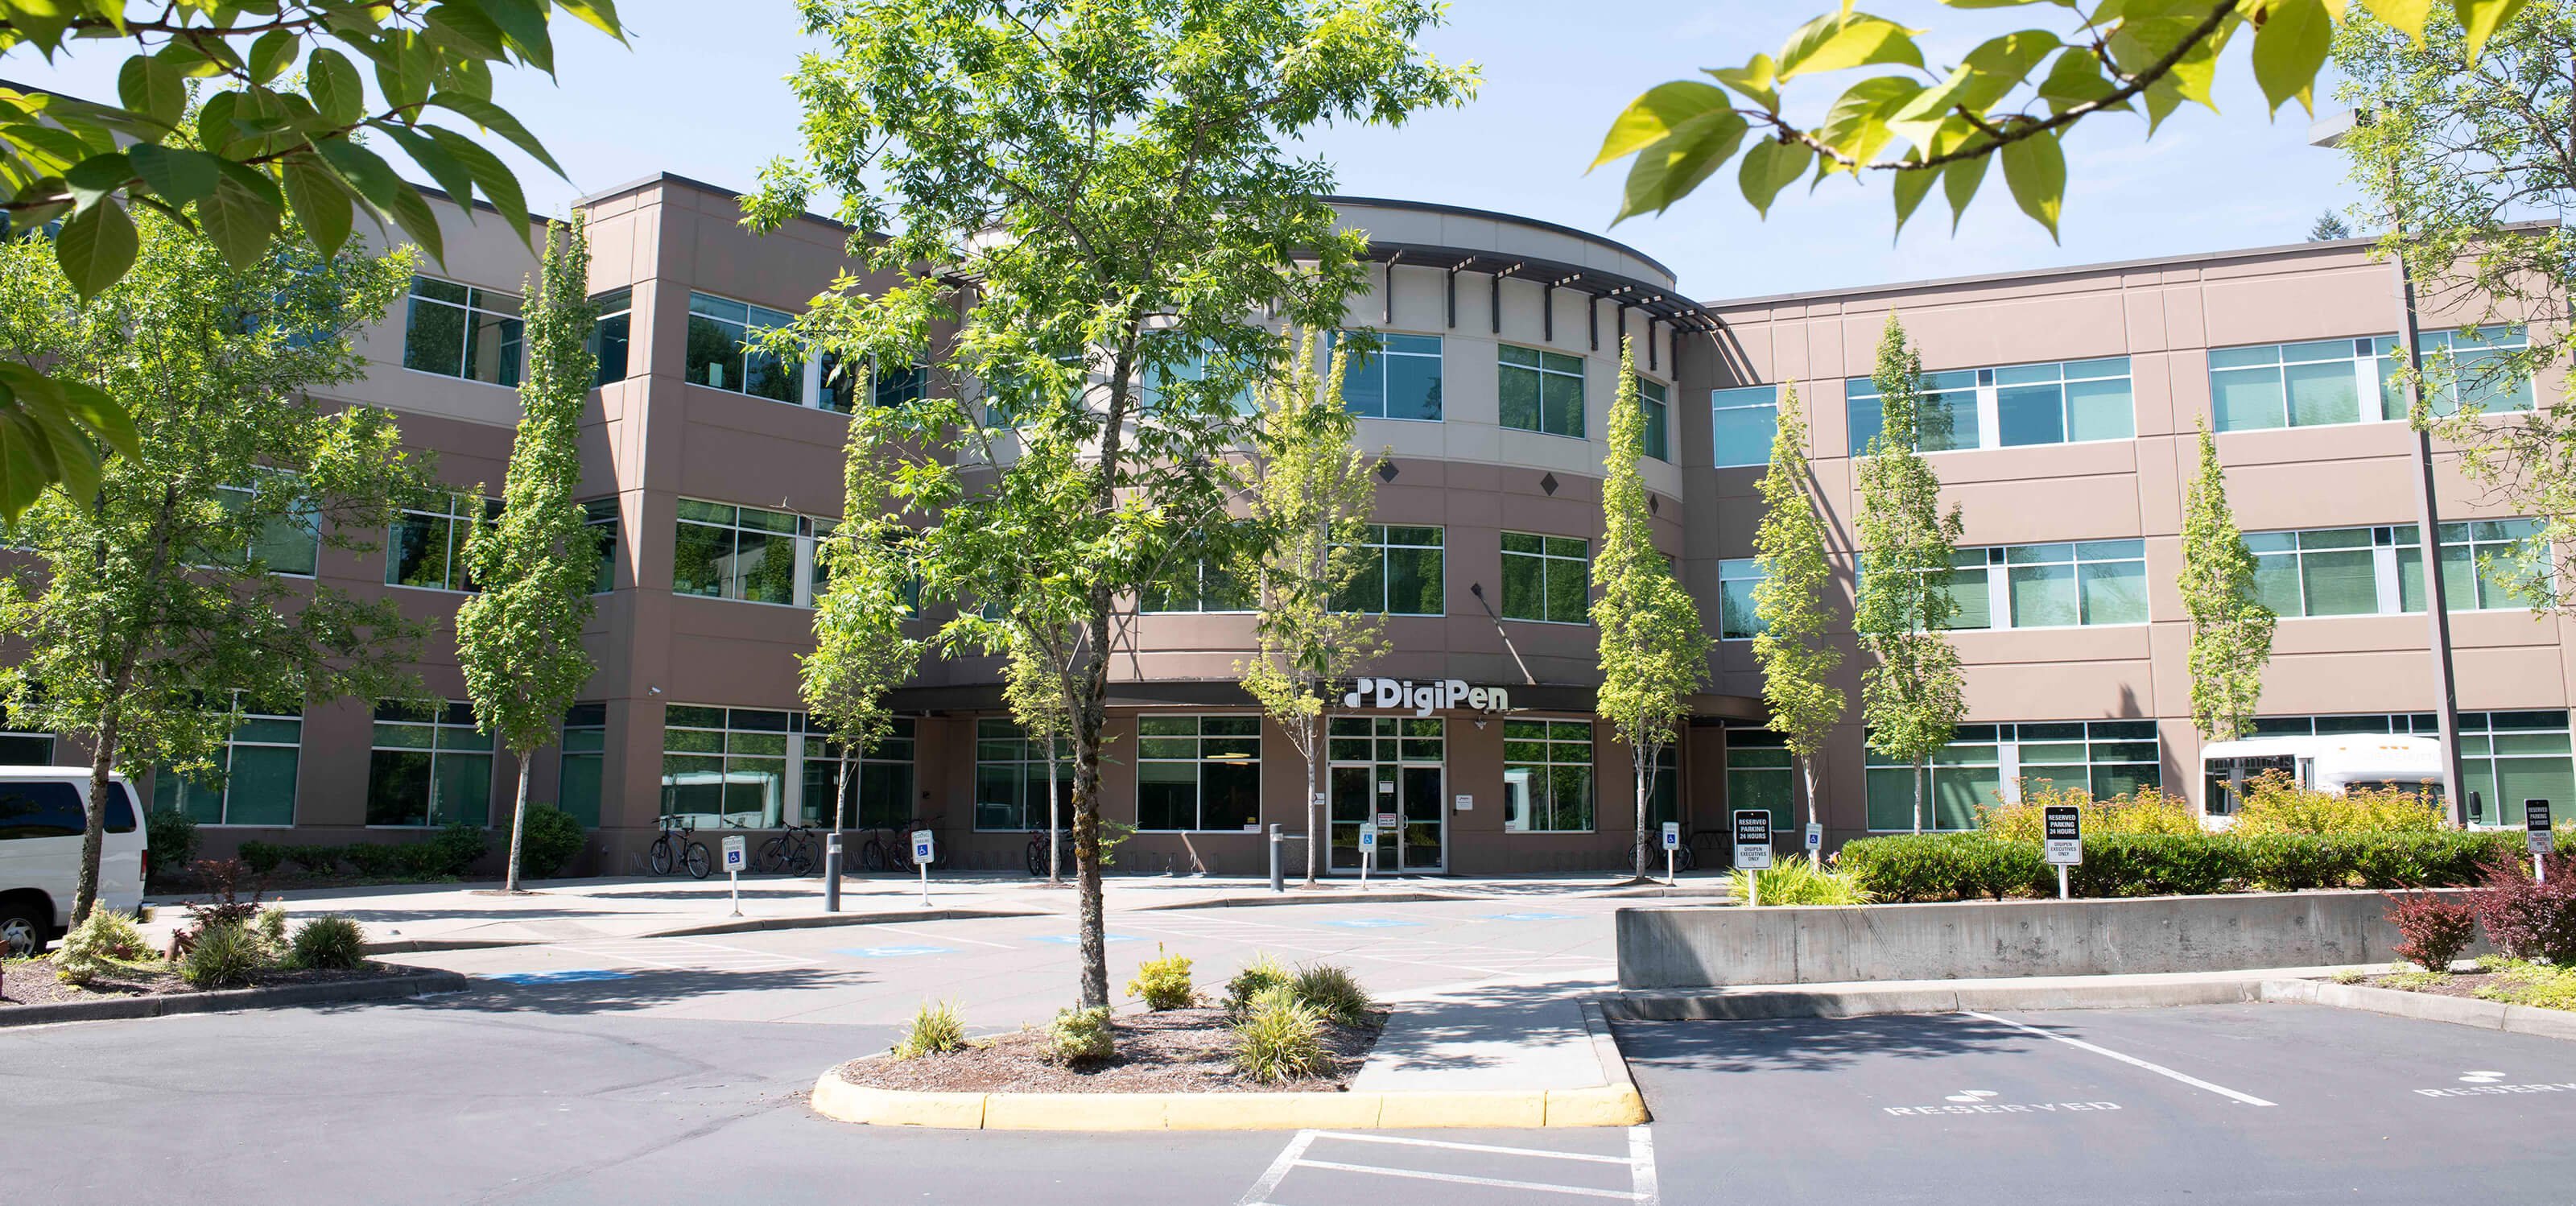 The front entrance of DigiPen's Redmond, WA campus